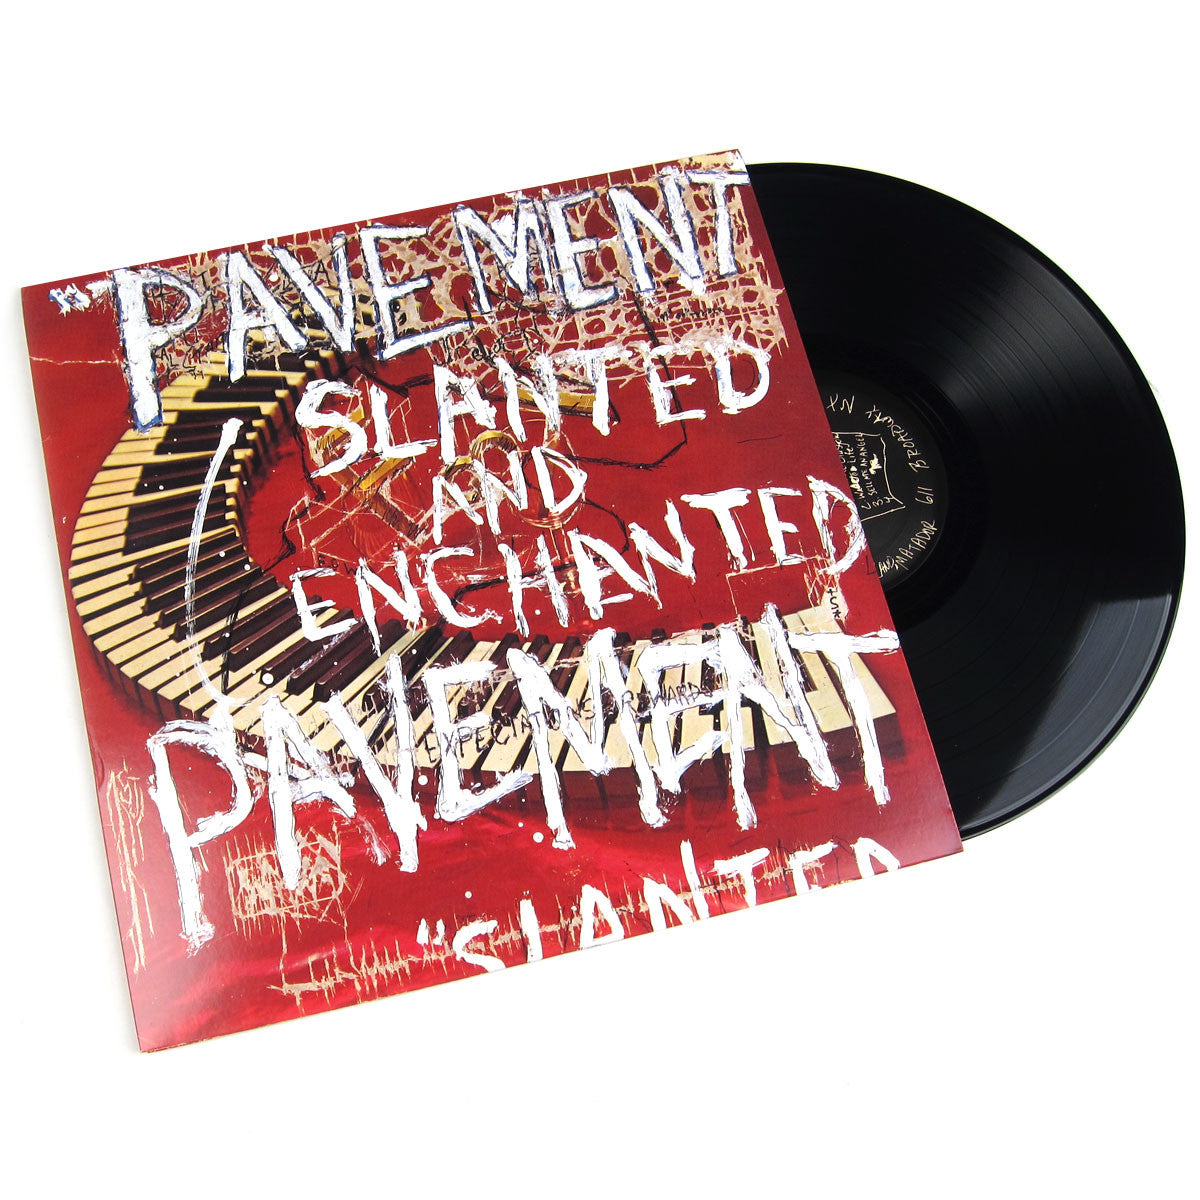 Pavement: Slanted & Enchanted Vinyl (Free MP3) LP